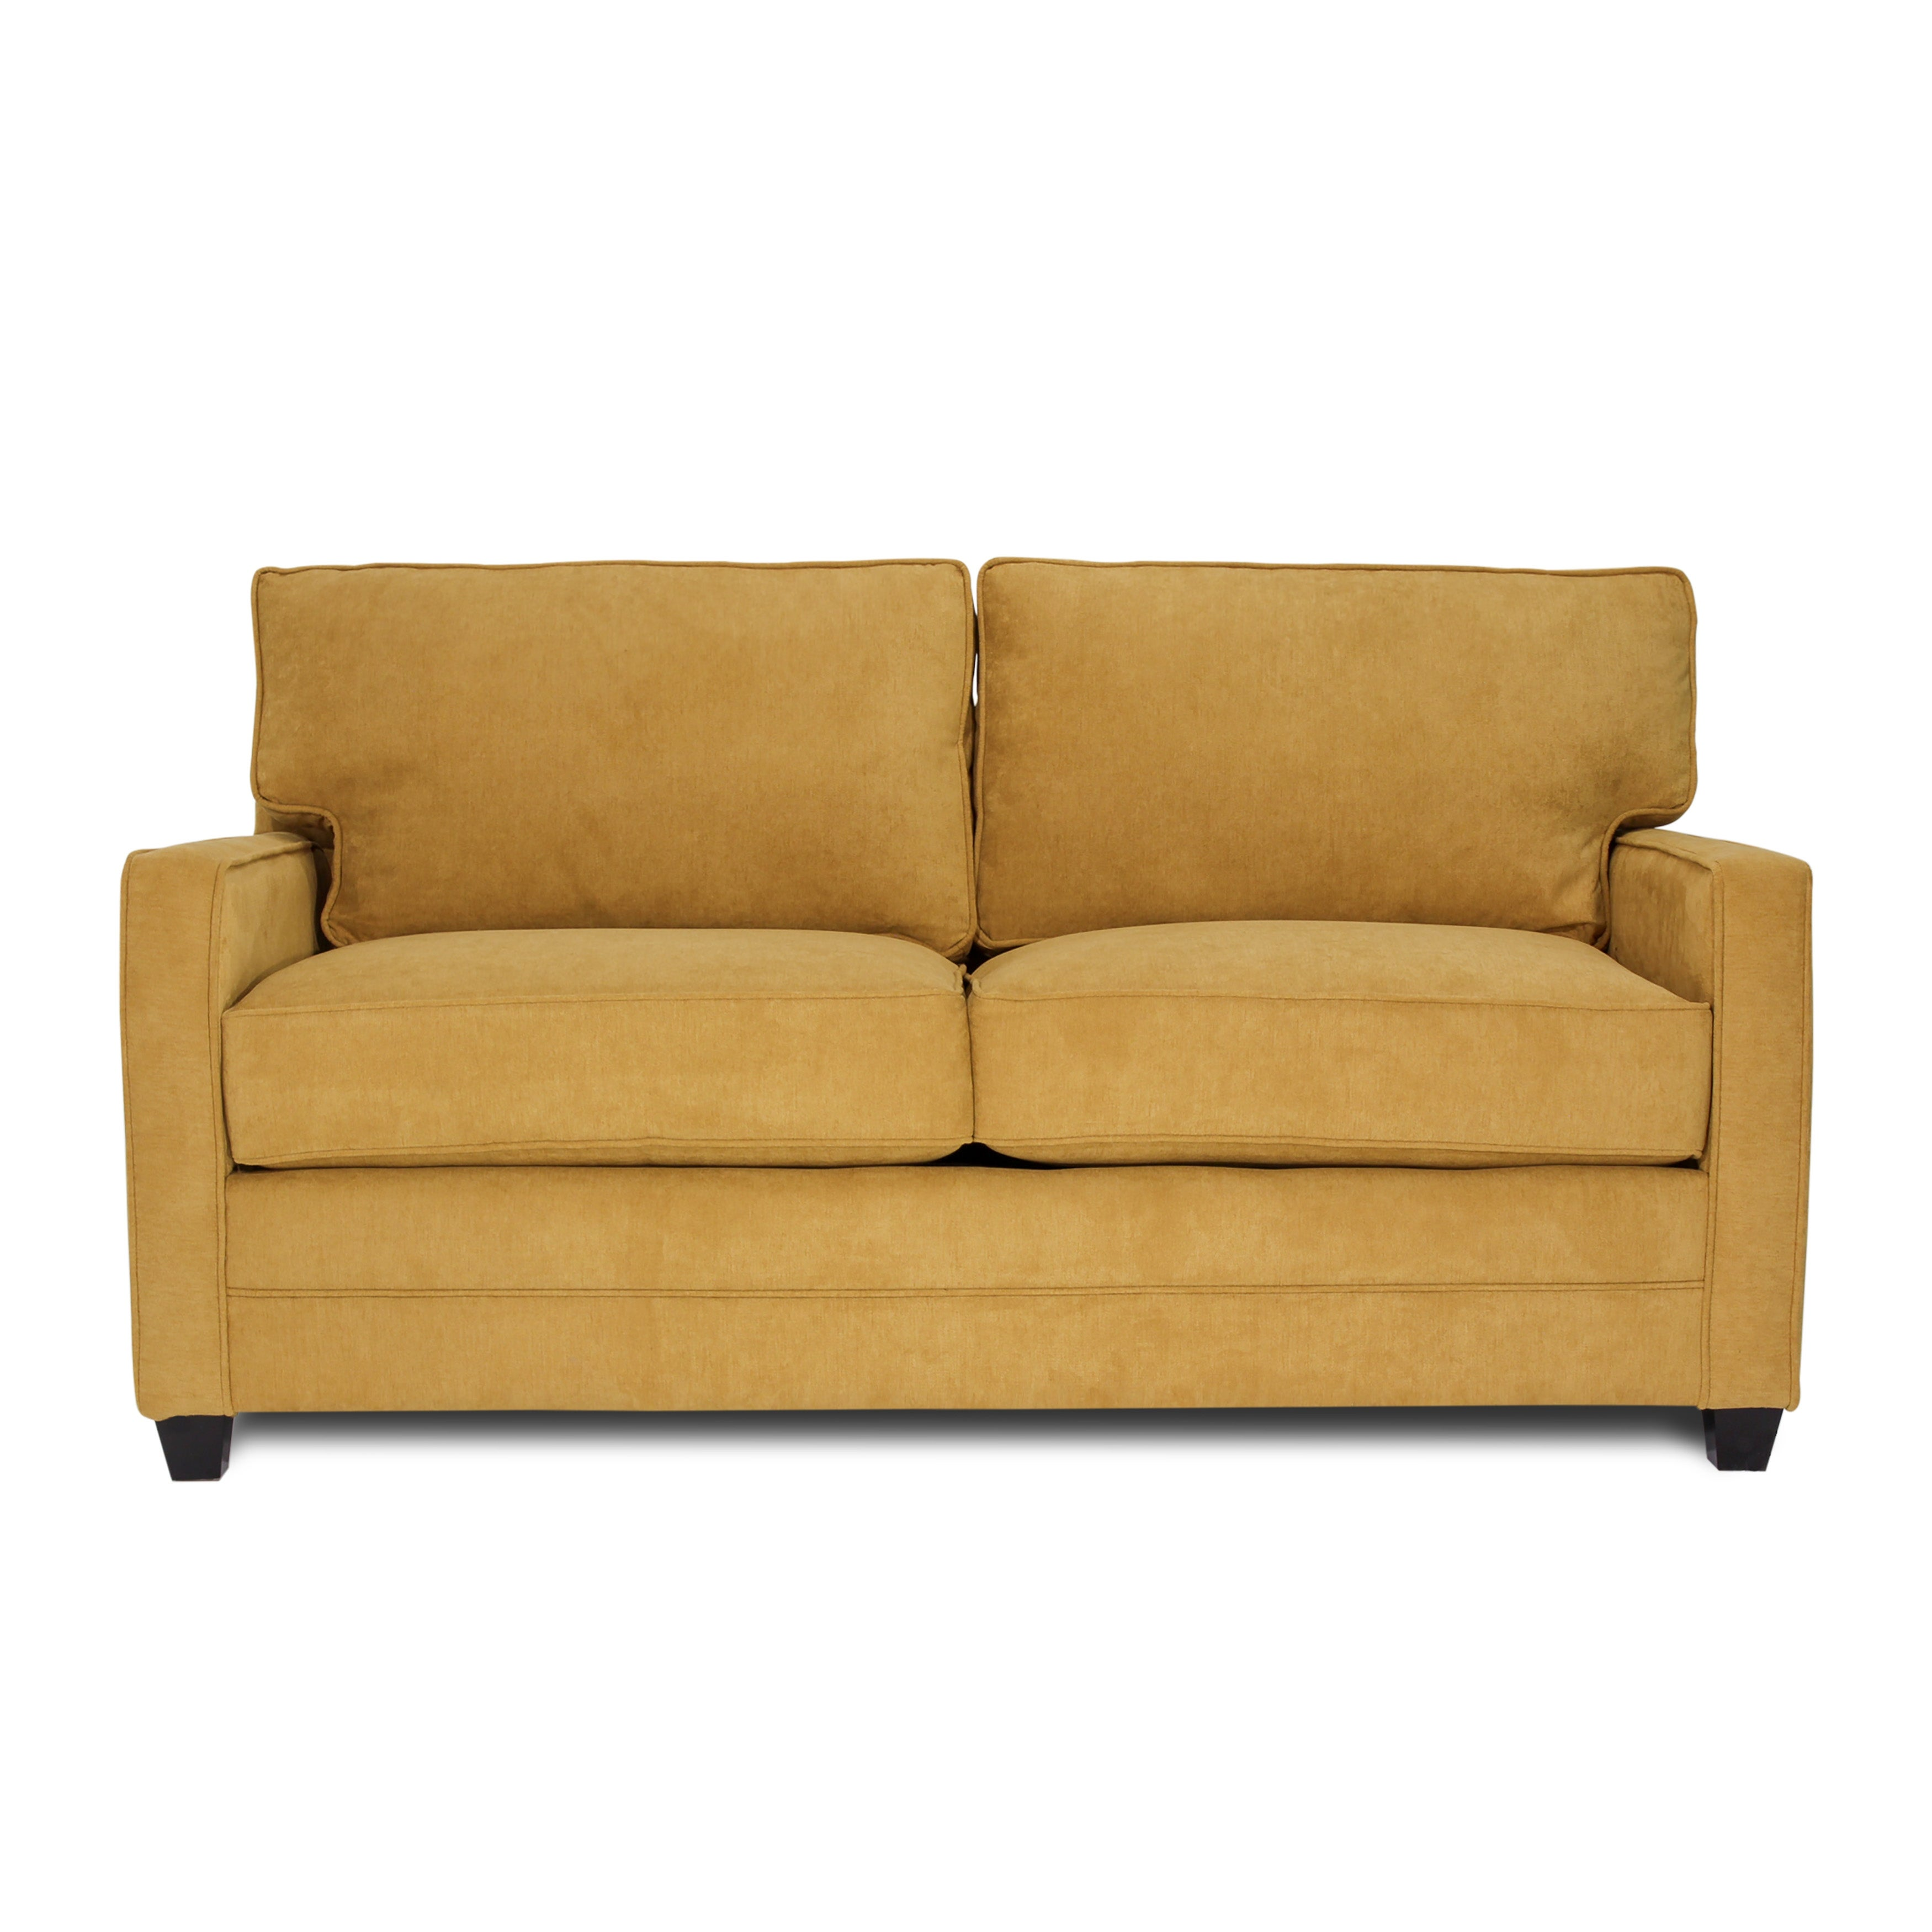 Picture of: Price Full Size Sleeper Sofa Overstock 28365032